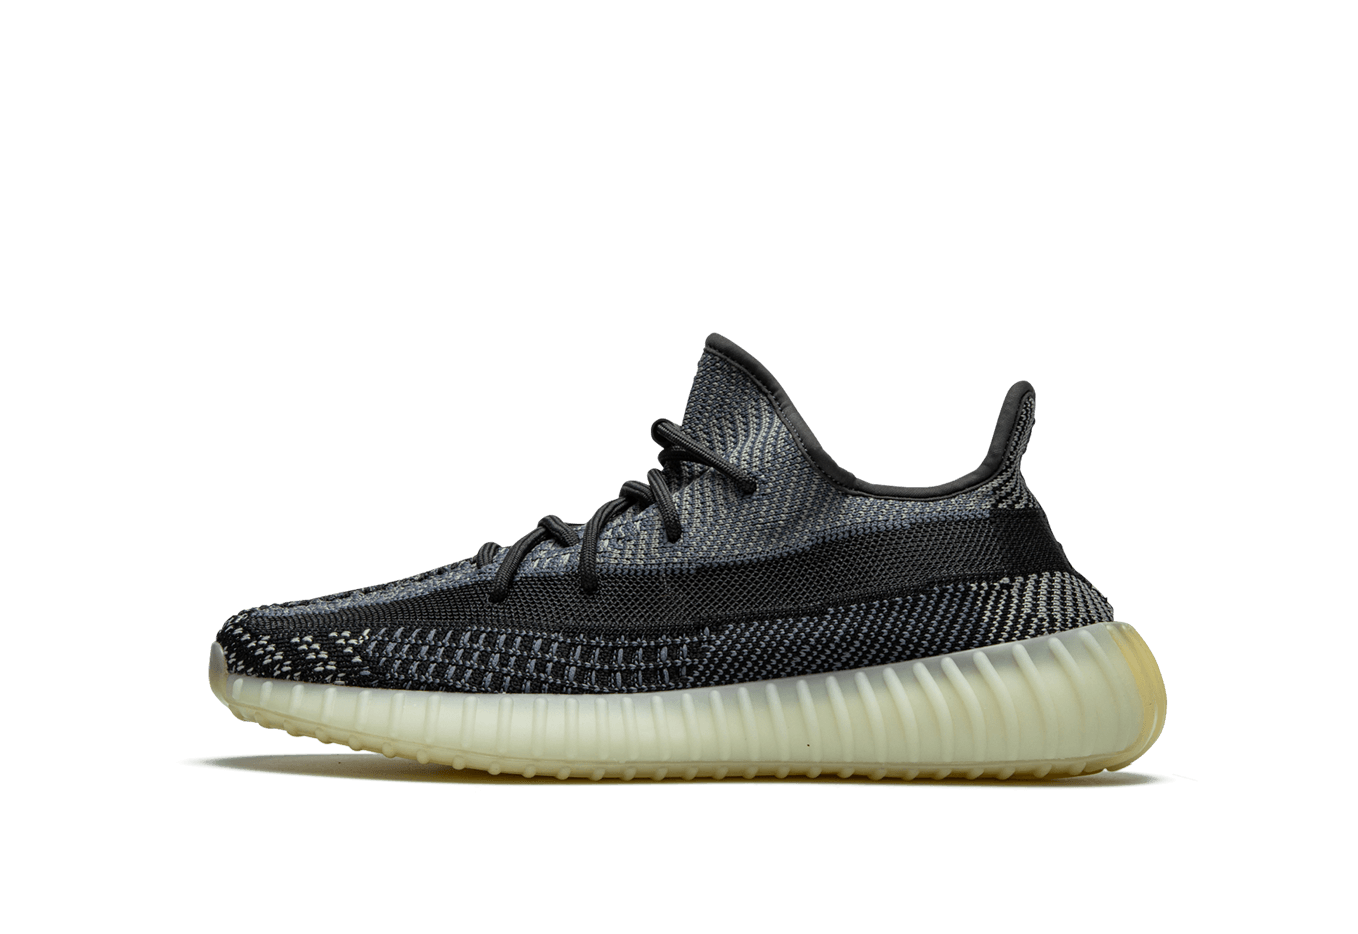 Buy New Adidas Yeezy Boost 350 V2 Asriel